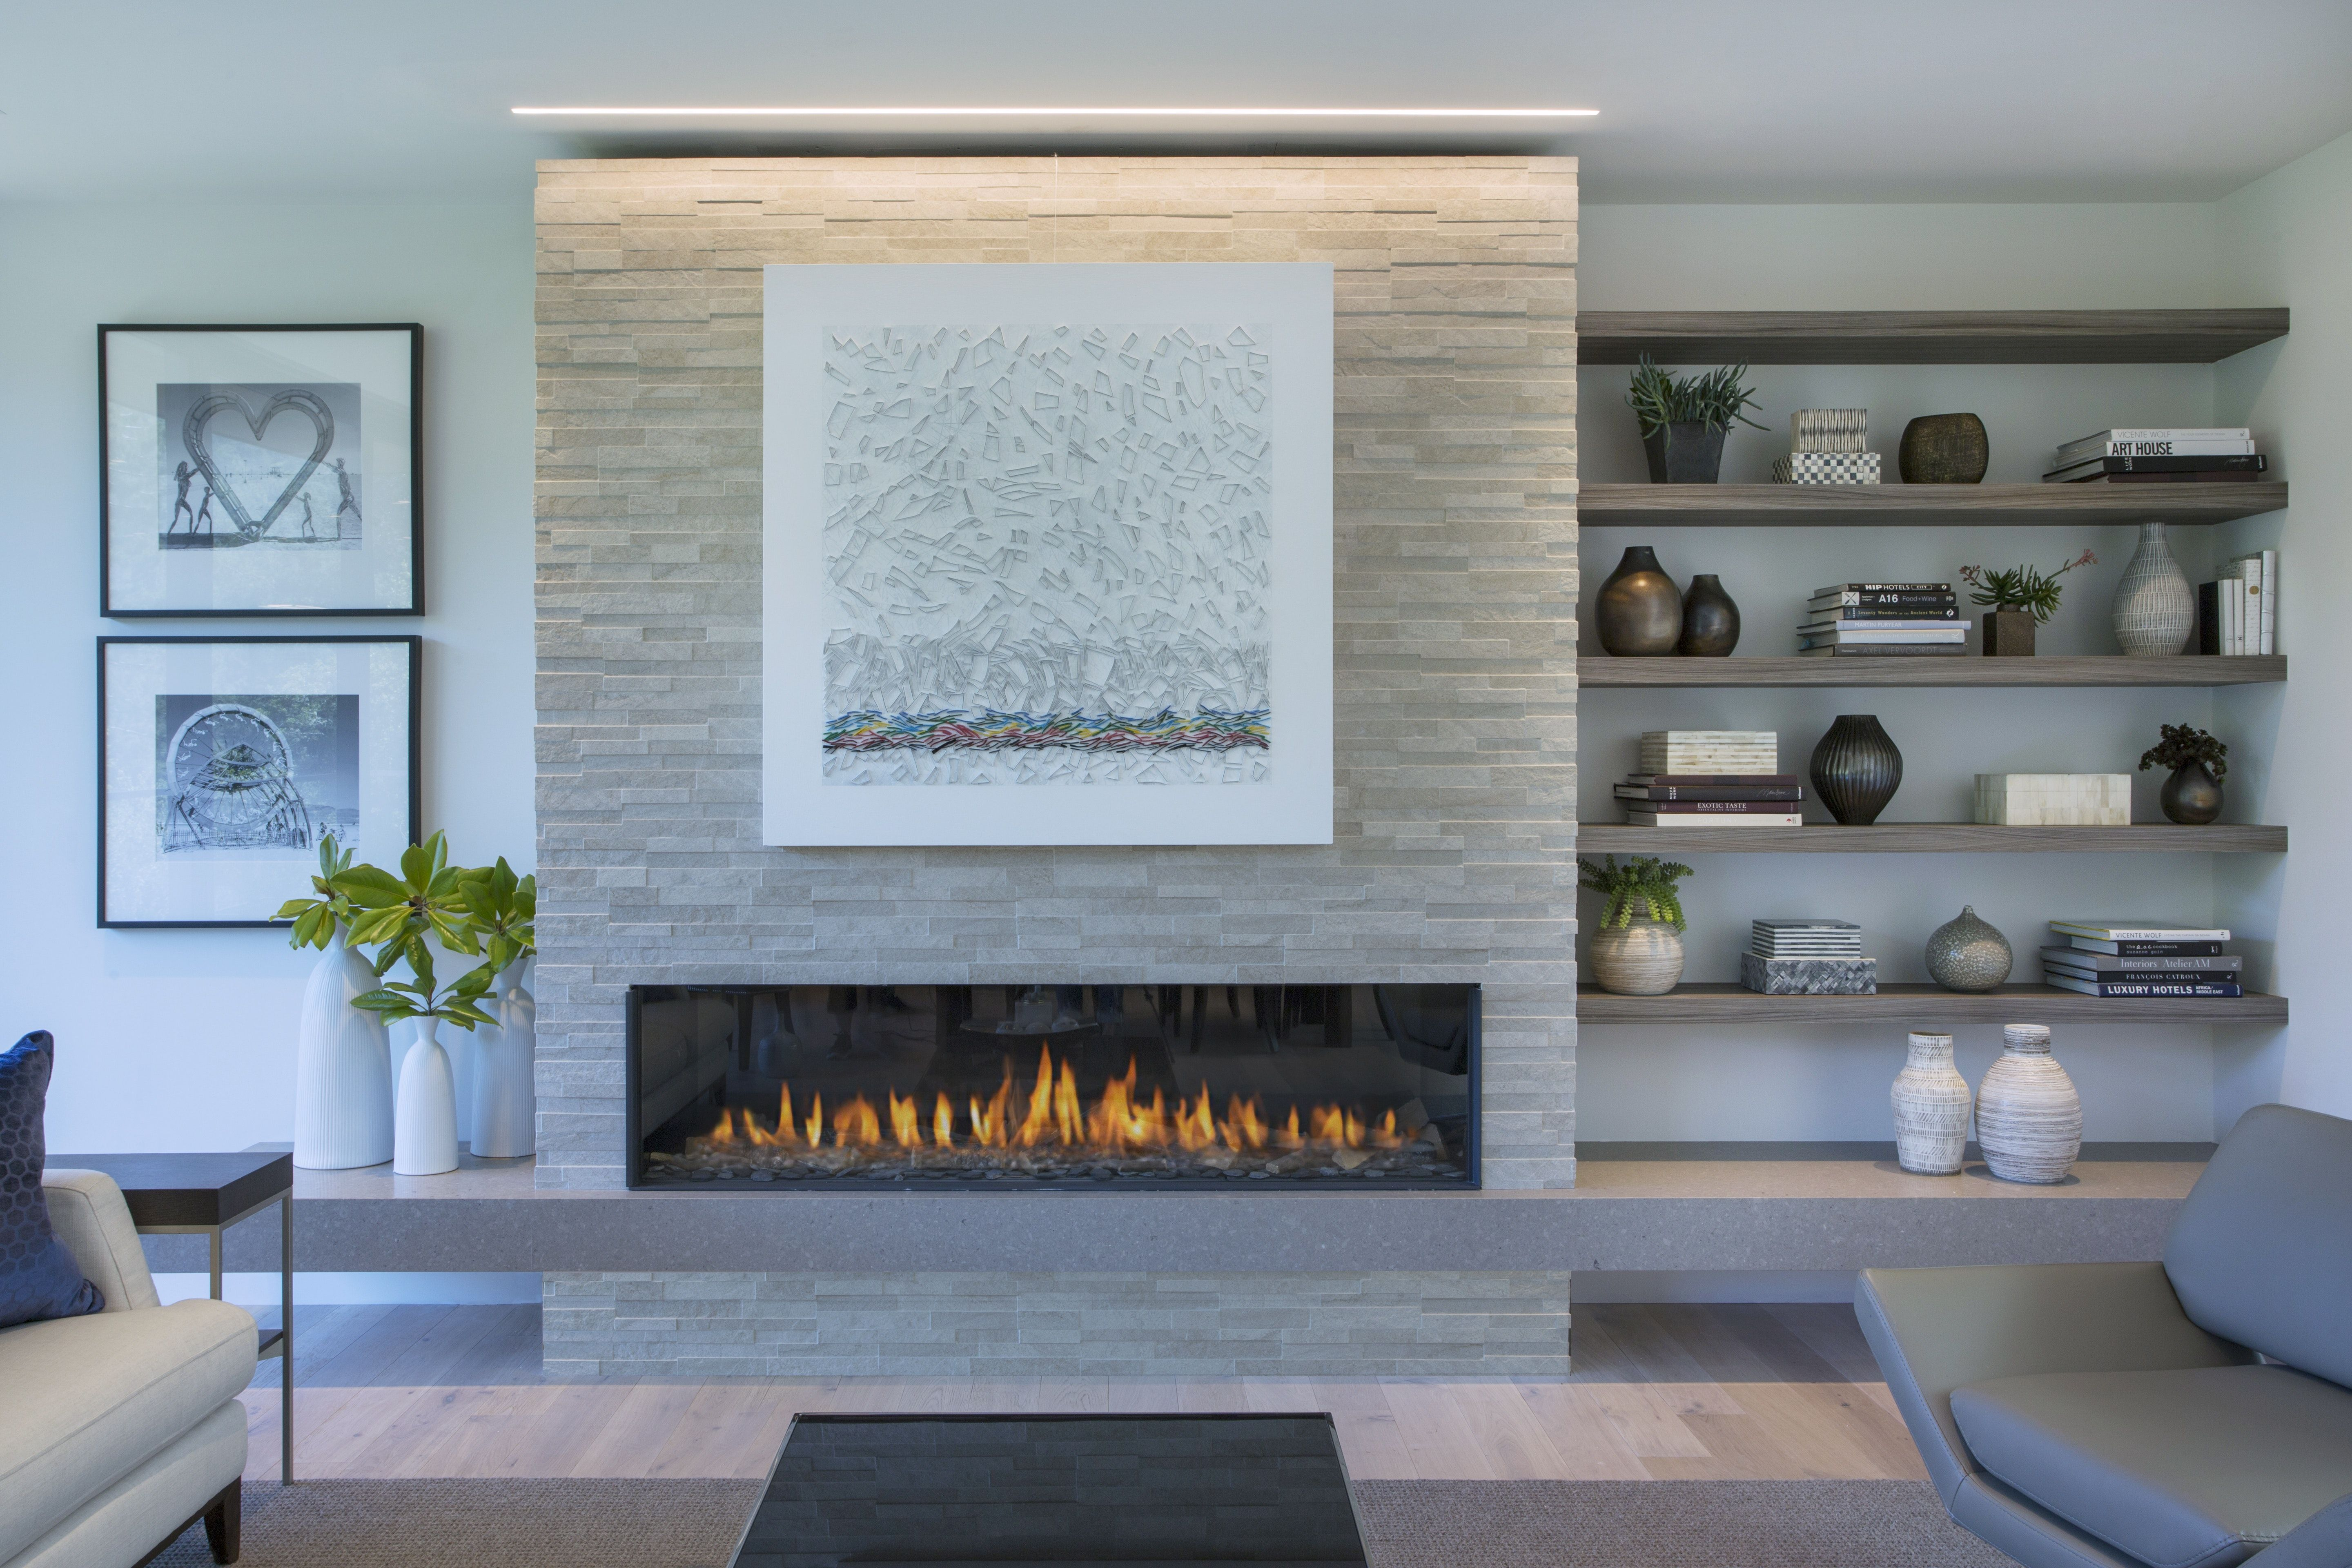 Modern Fireplace With Textured Tile Light Strip Above And Accessorized Shelves Modern Fireplace Decor Modern Fireplace Contemporary Fireplace Designs